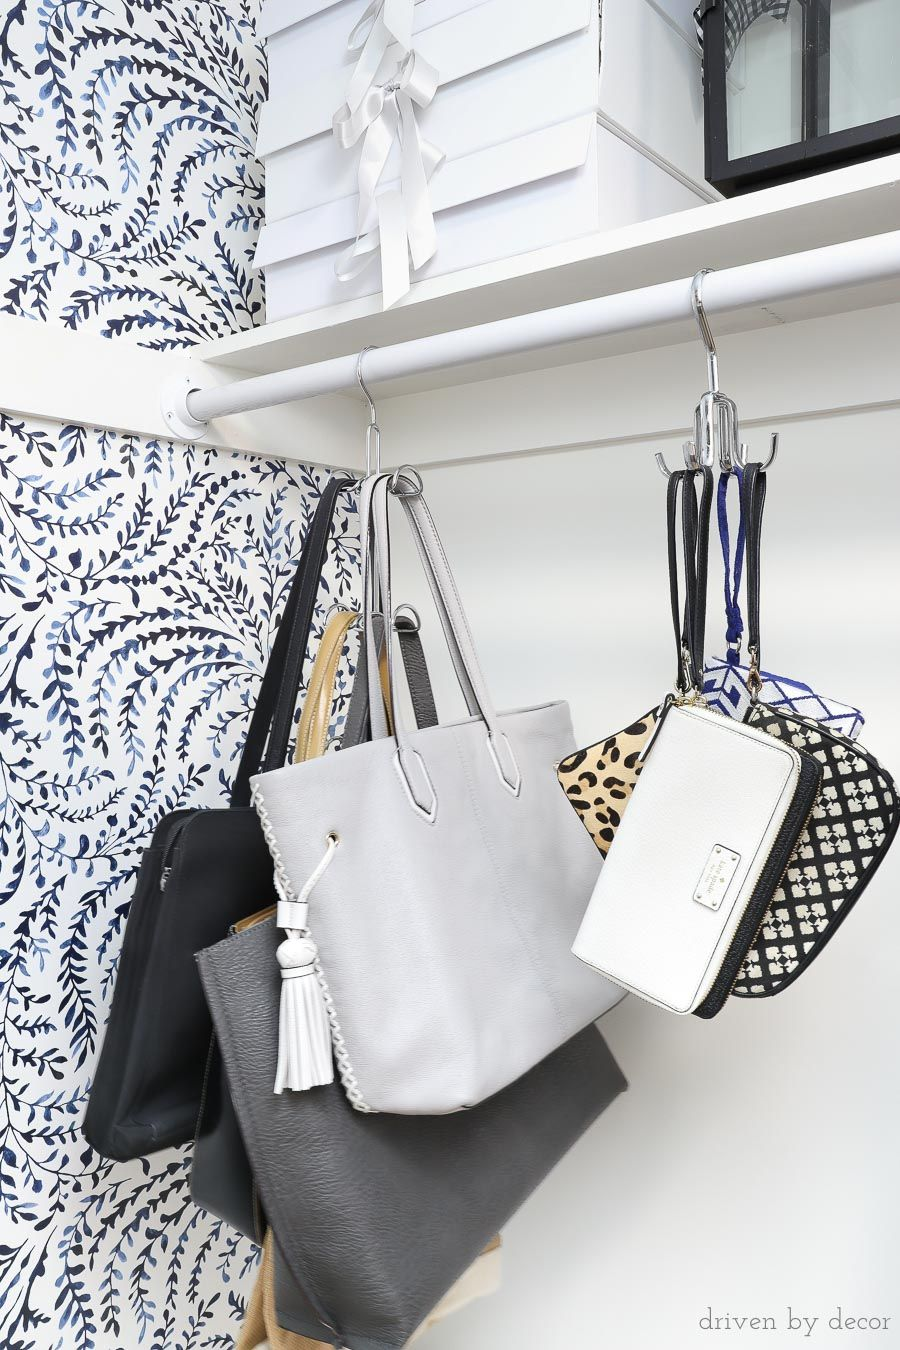 How To Organize Your Hoard Closet In Six Simple Steps